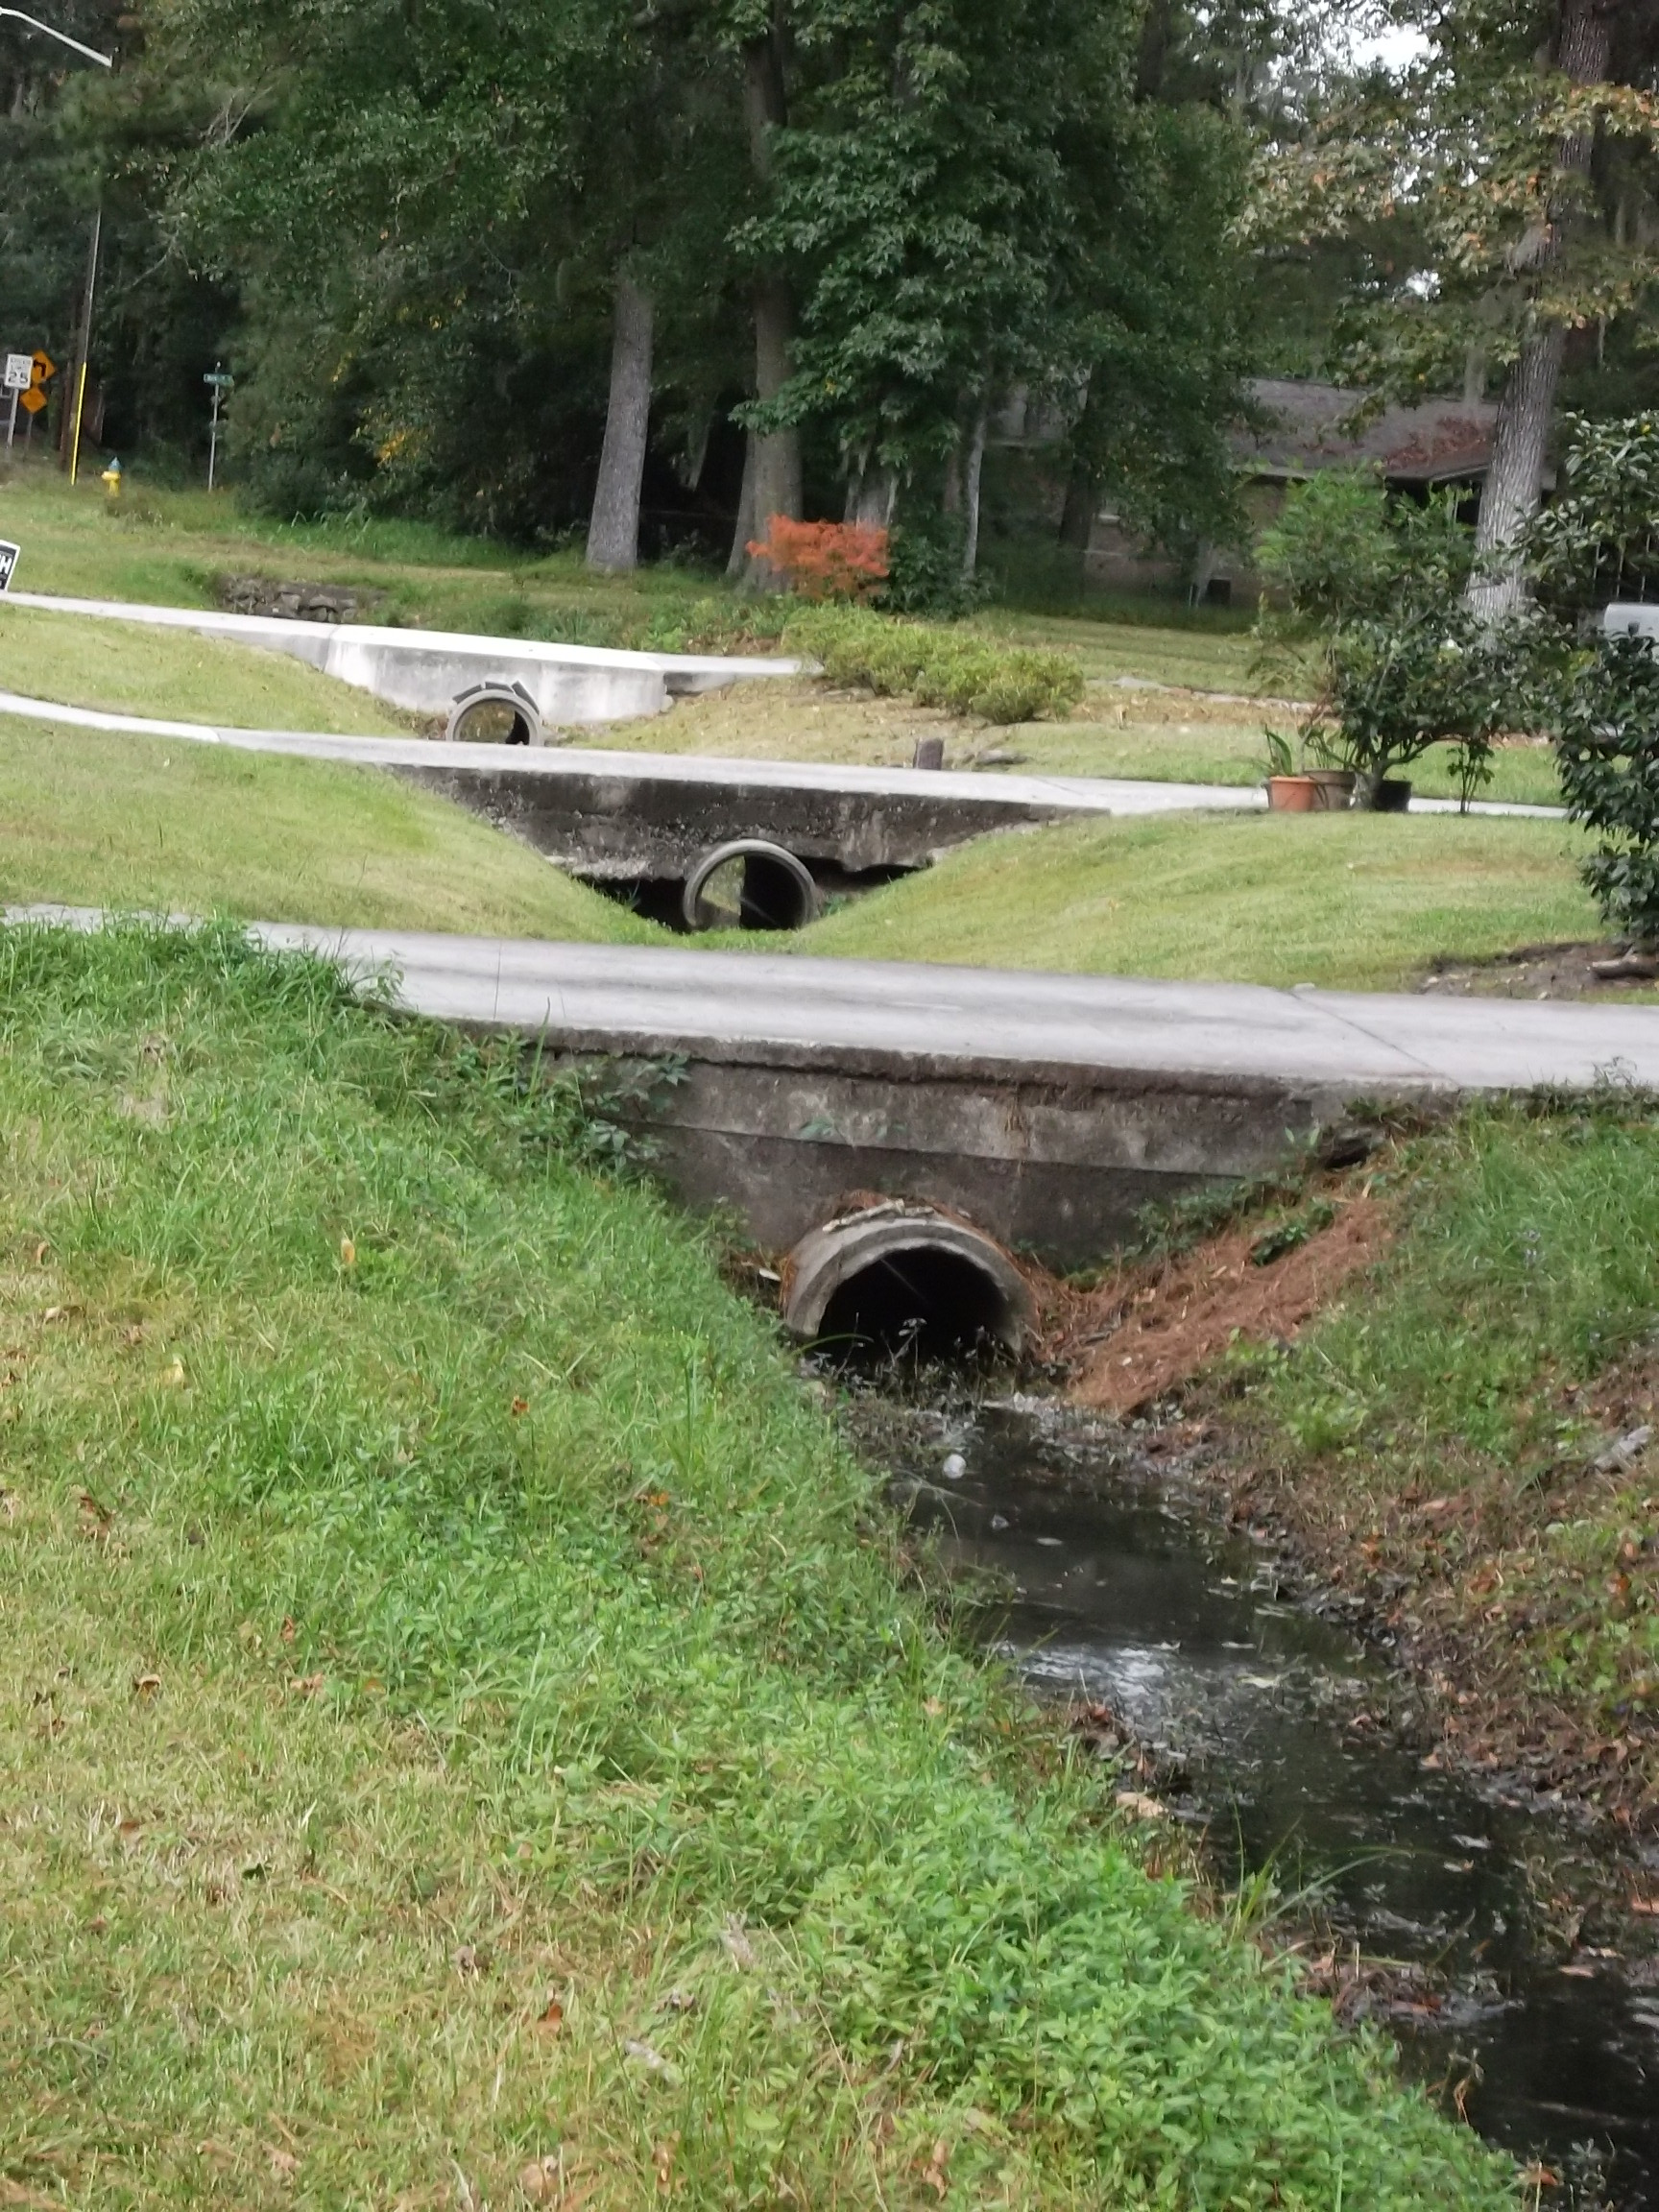 Clean pipes and ditches allow strom water to flow.